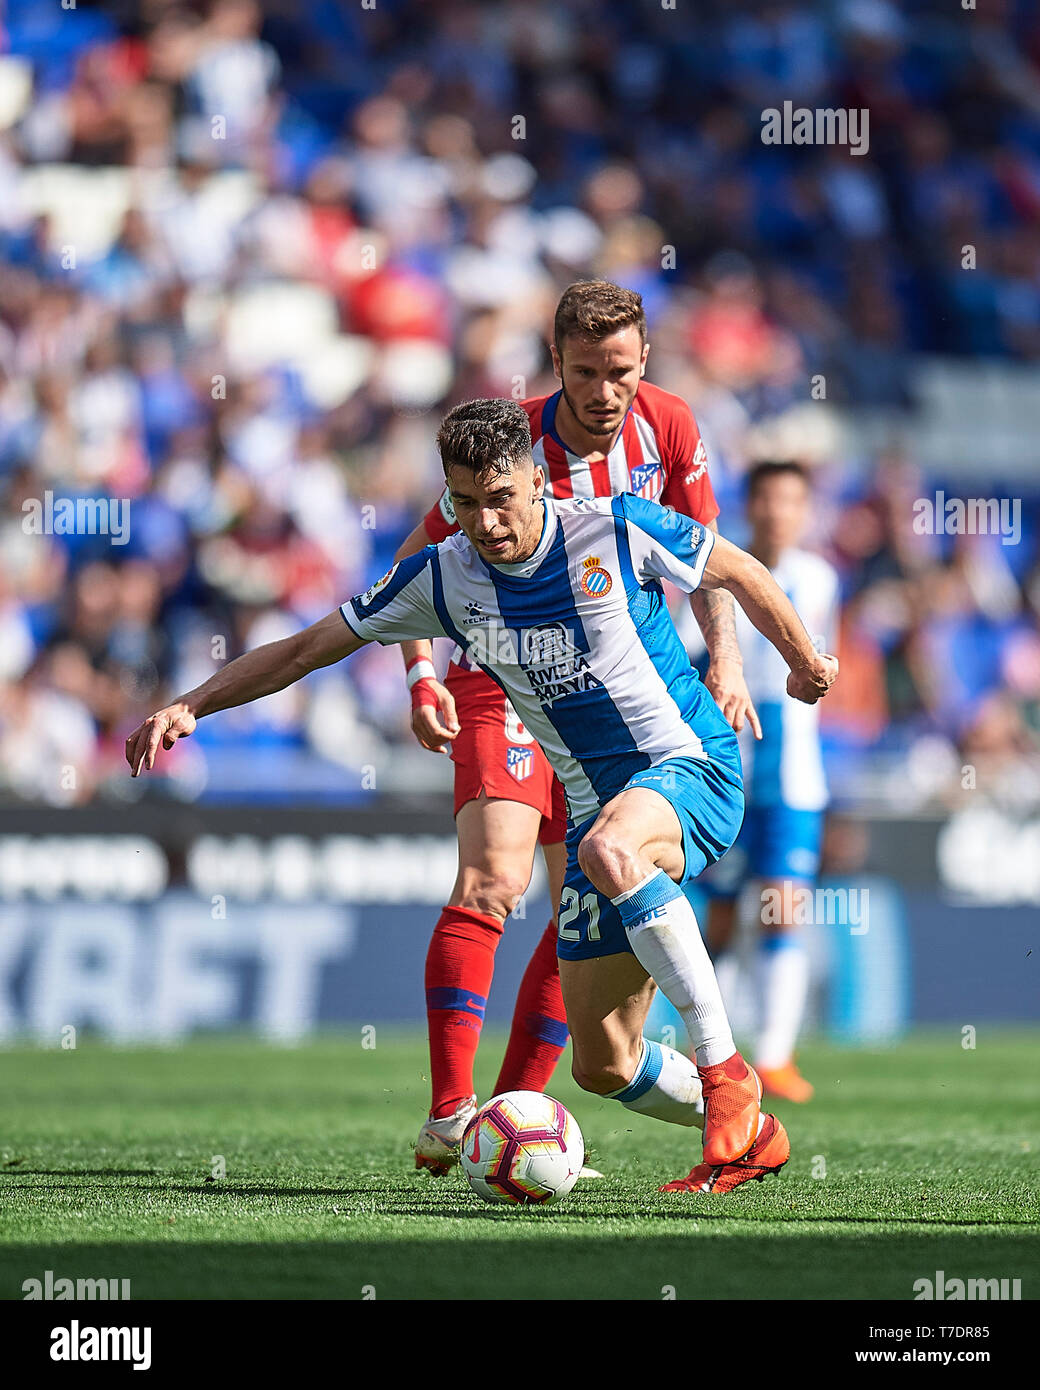 Mario Hermoso of RCD Espanyol and Saœl Niguez of Atletico de Madrid during the match between RCD Espanyol v Atletico de Madrid of LaLiga, date 36, 2018-2019 season. RCDE Stadium. Barcelona, Spain - 04 MAY 2019 - Stock Image